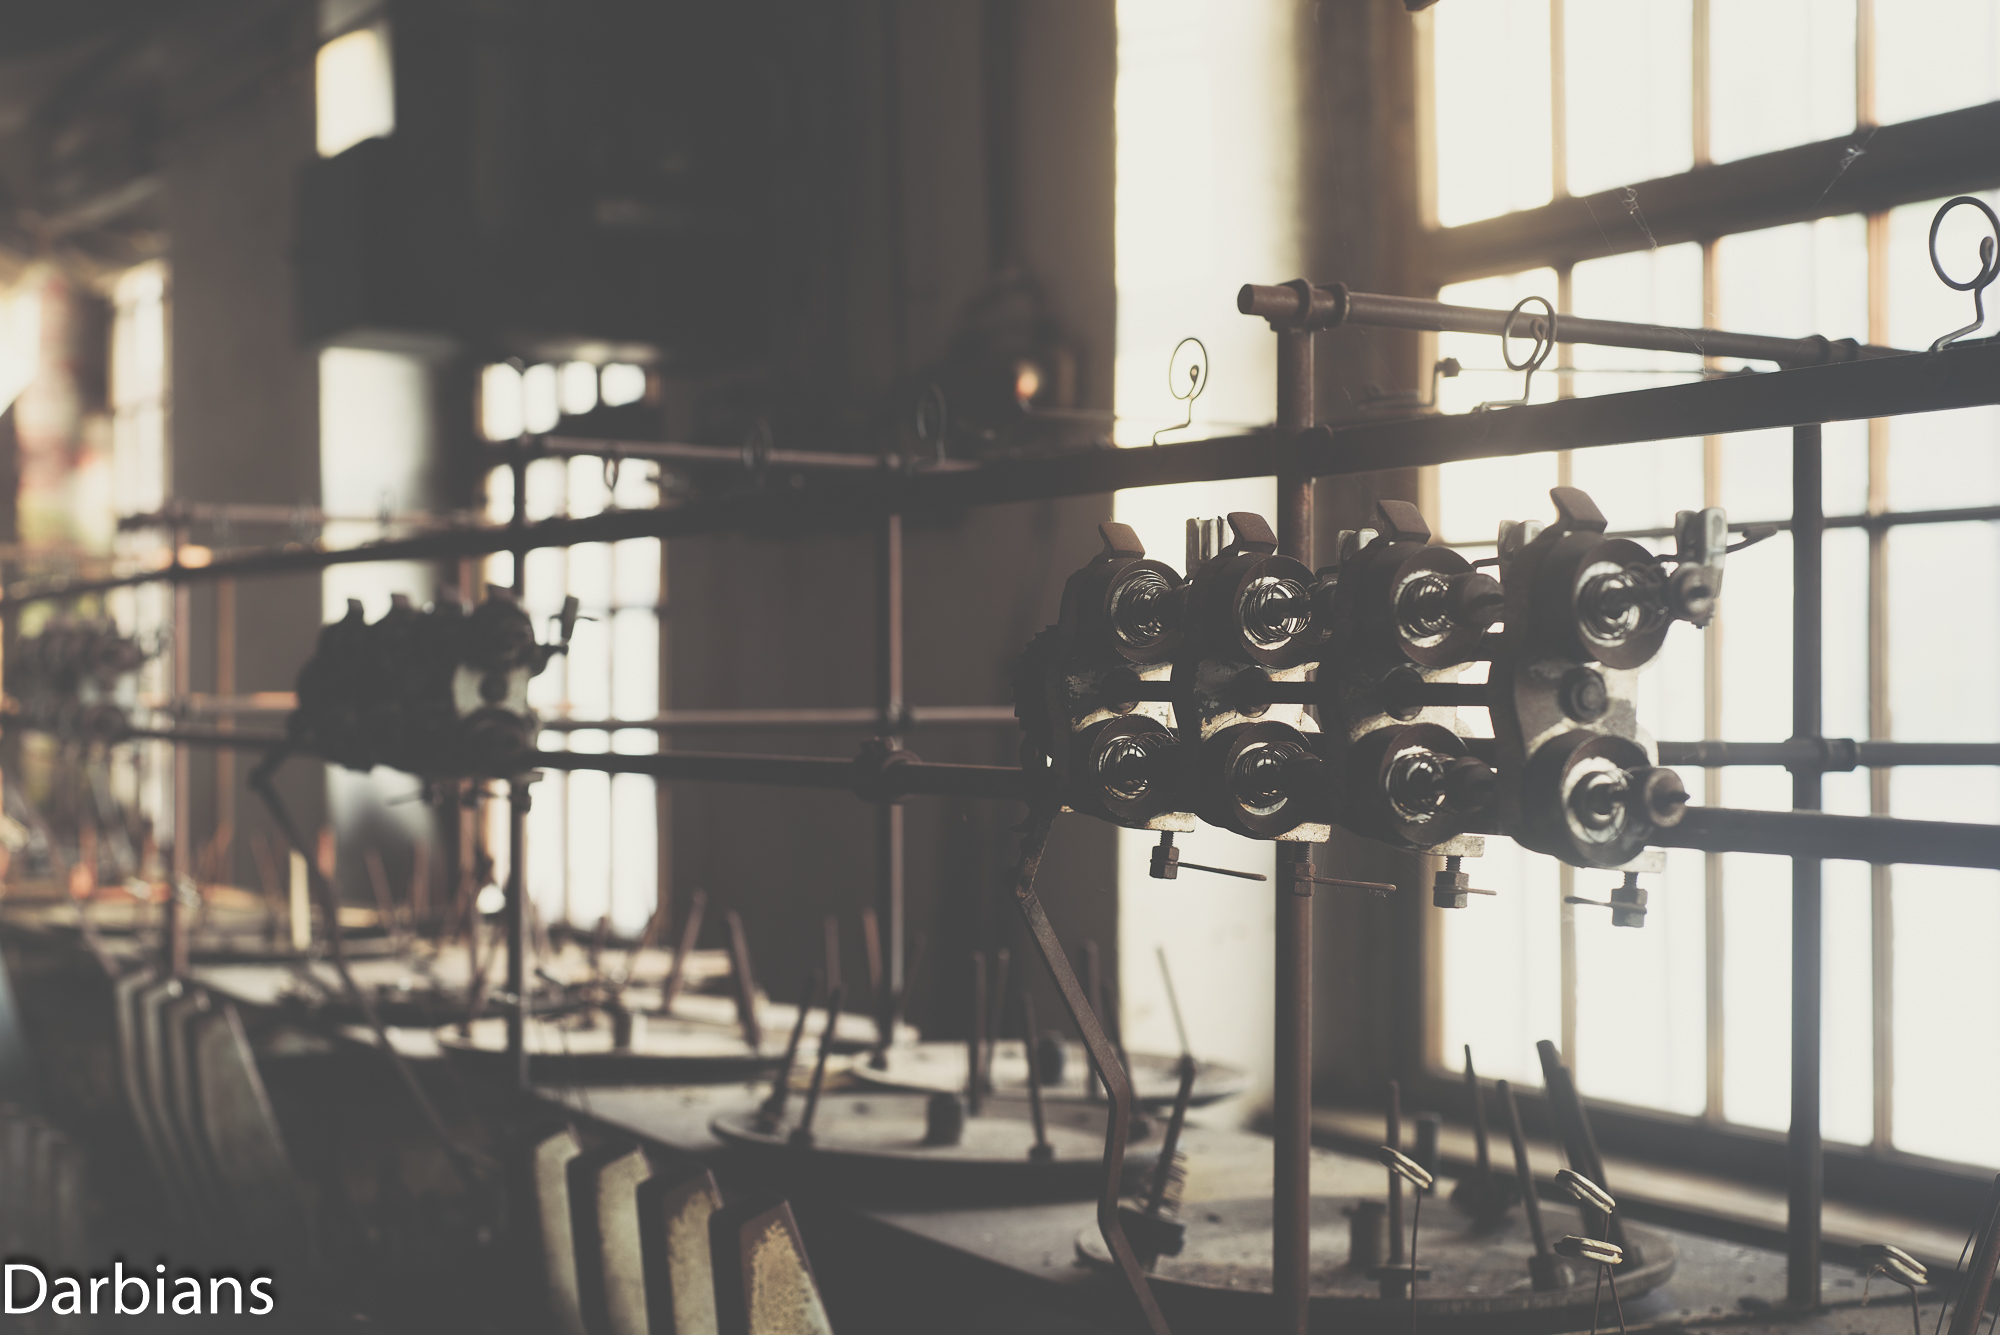 Close up of spinning machines.